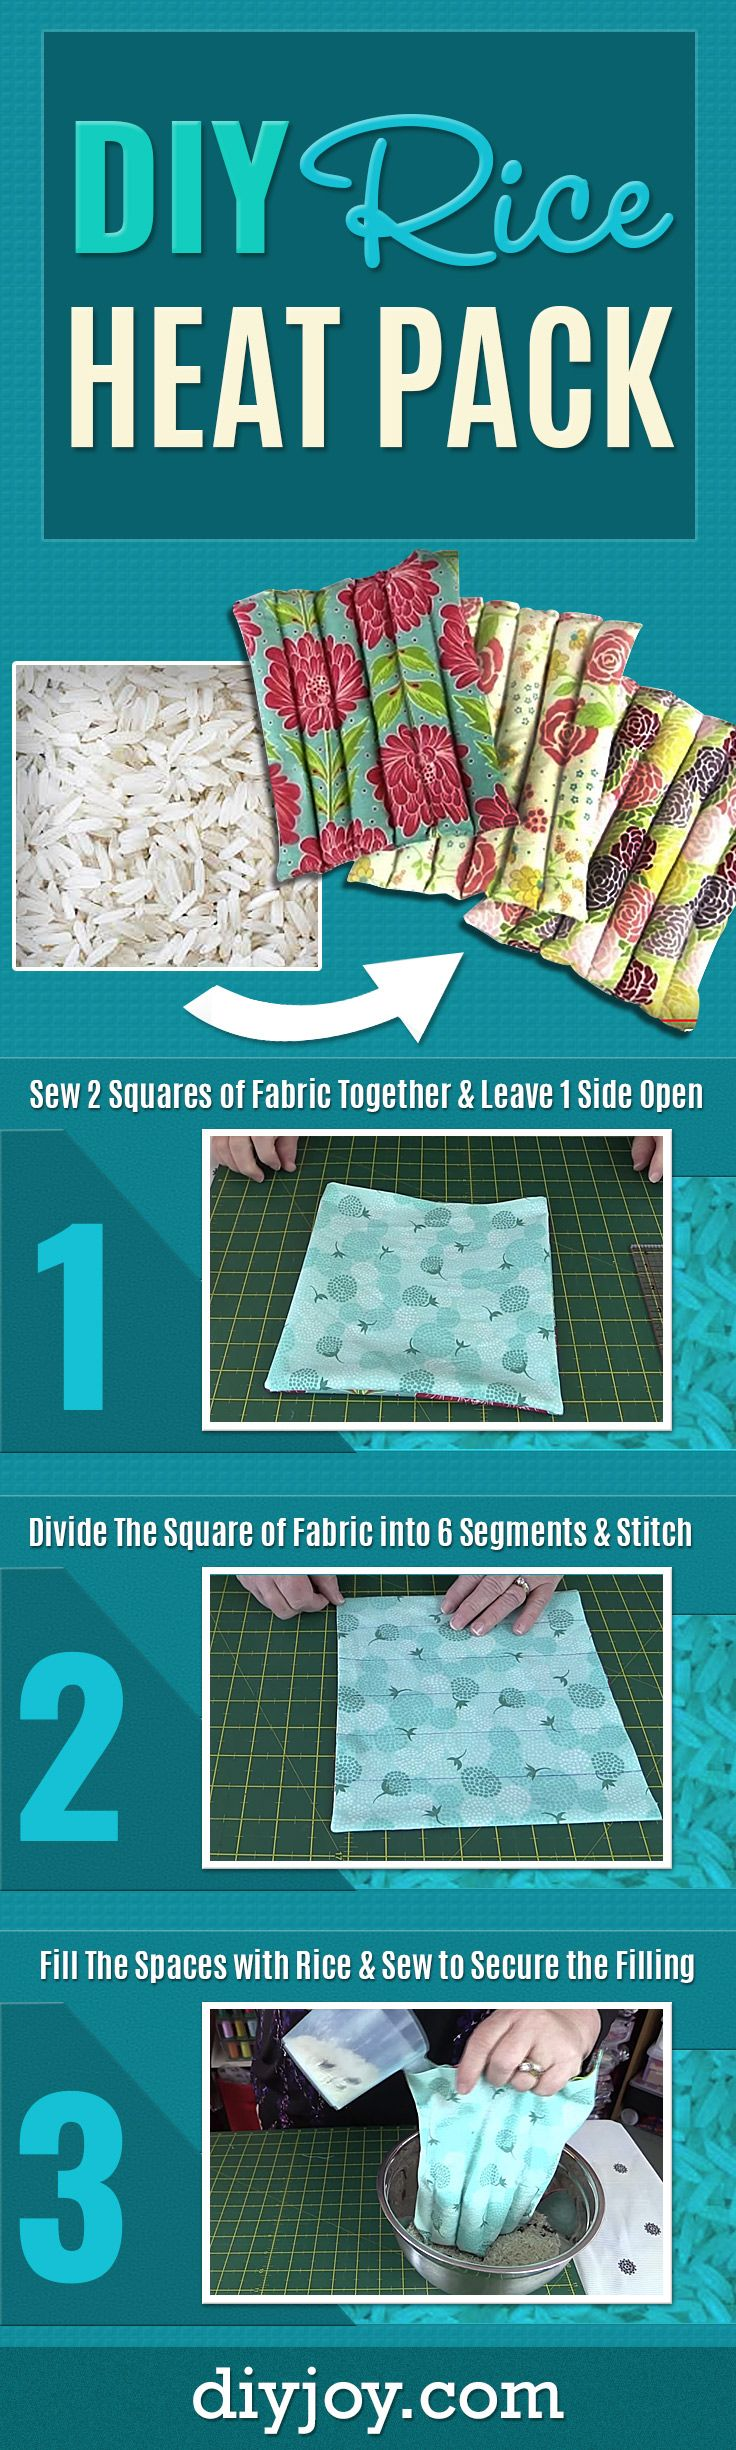 Mejores 664 imgenes de sewing ideas en pinterest proyectos de diy rice heat pack easy do it yourself heat pack tutorial made with rice solutioingenieria Gallery